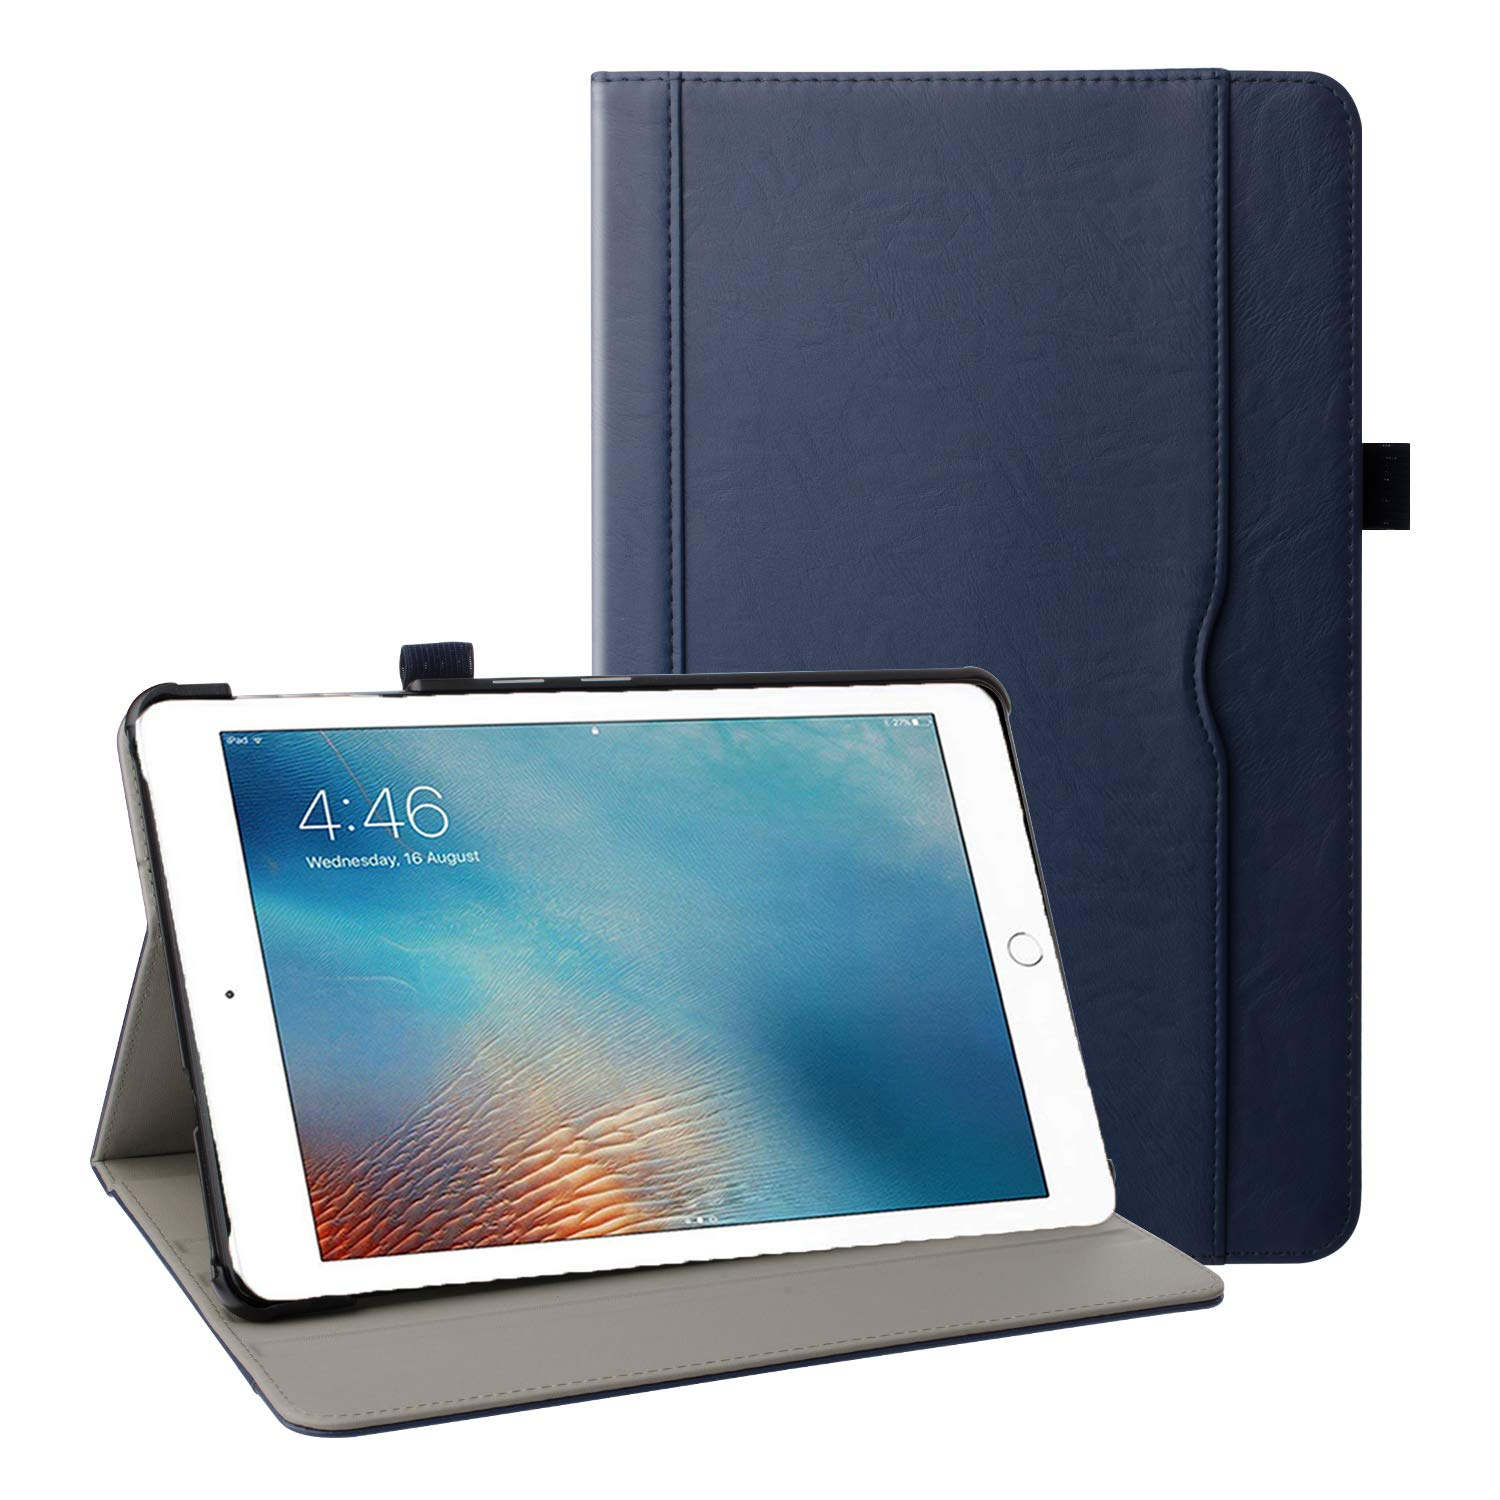 """Grifobes iPad Air 3 Case 10.5"""" 2019/iPad Pro 10.5 Case 2017,Premium Leather Slim Multi-Angle Viewing Stand Folio Protective Case with Auto Wake/Sleep for iPad Air 3rd Generation 10.5"""" 2019,Blue"""